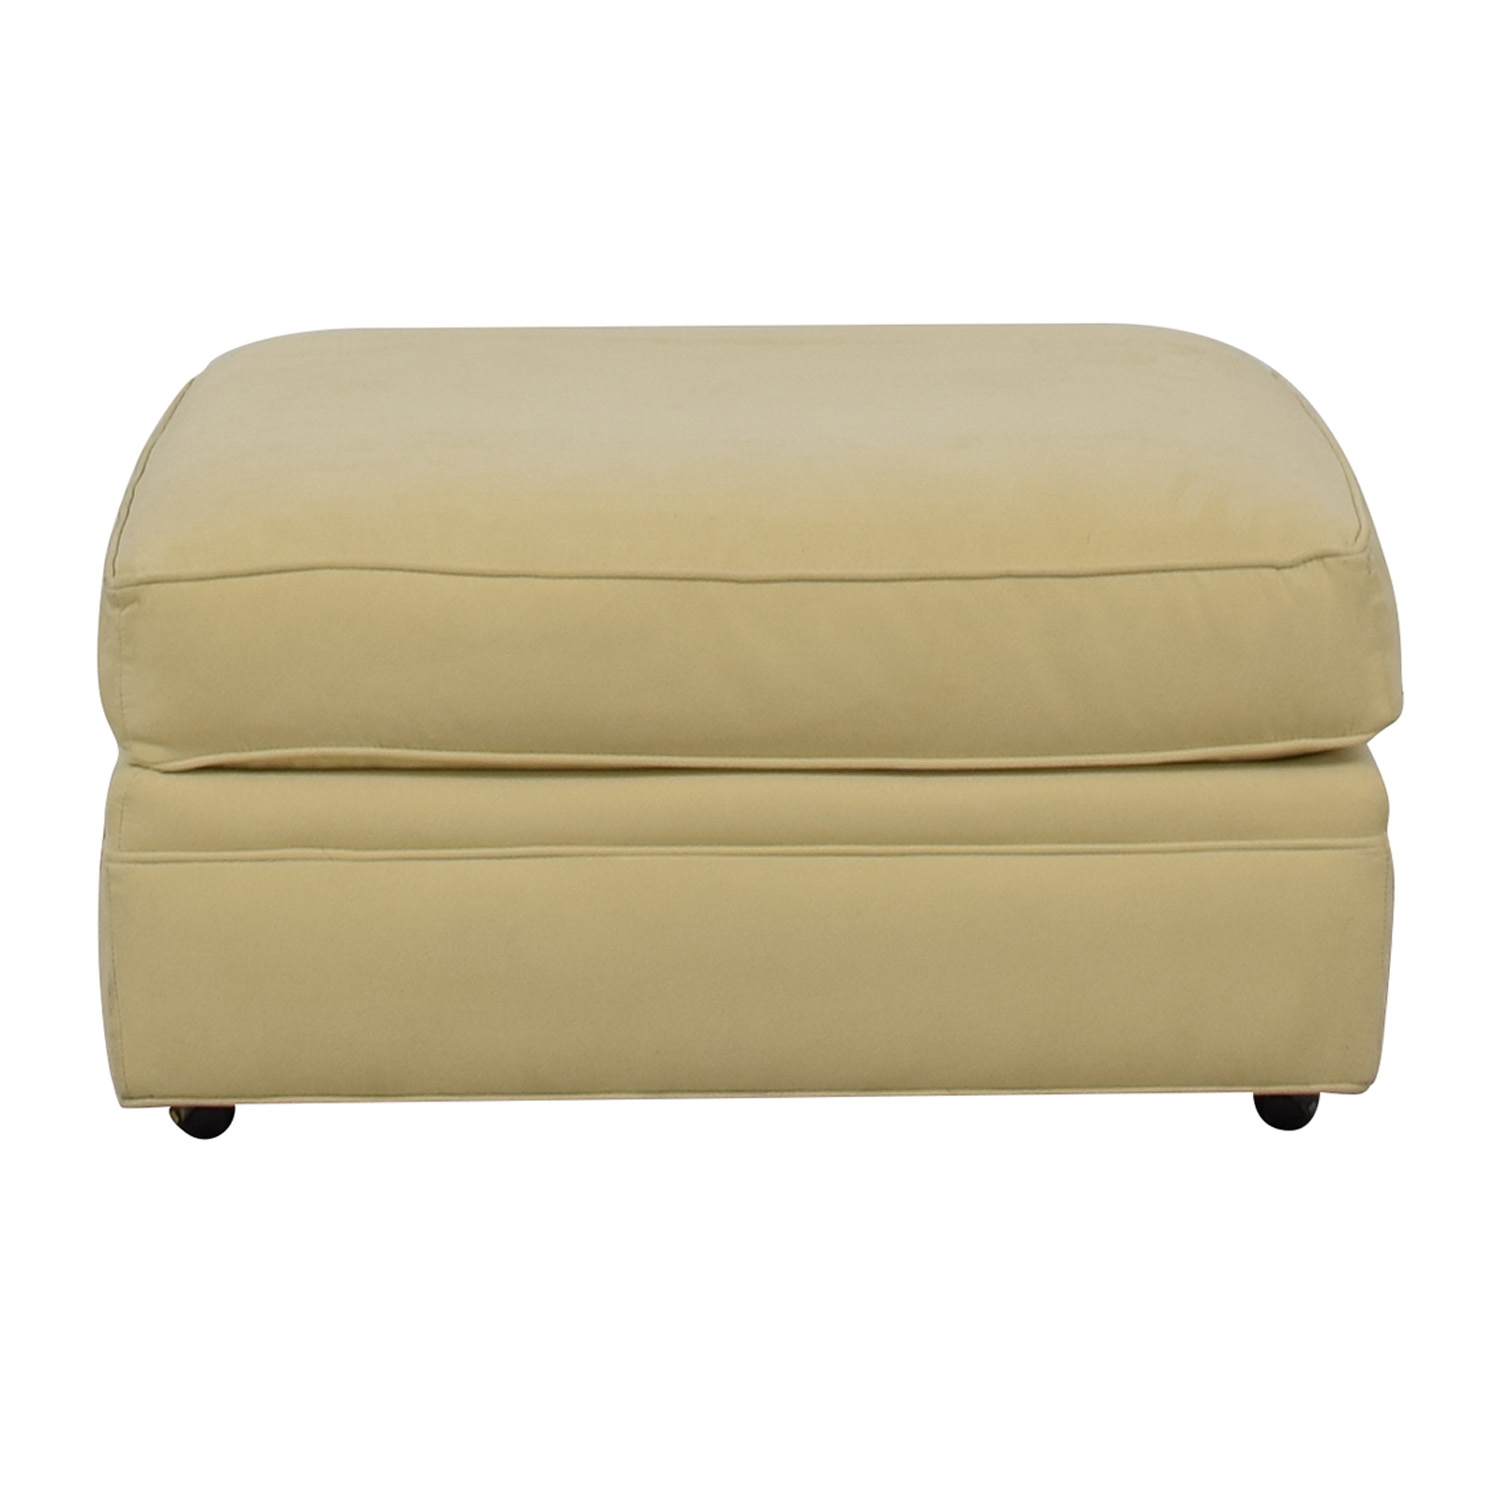 buy Crate & Barrel Crate & Barrel Beige Ottoman online